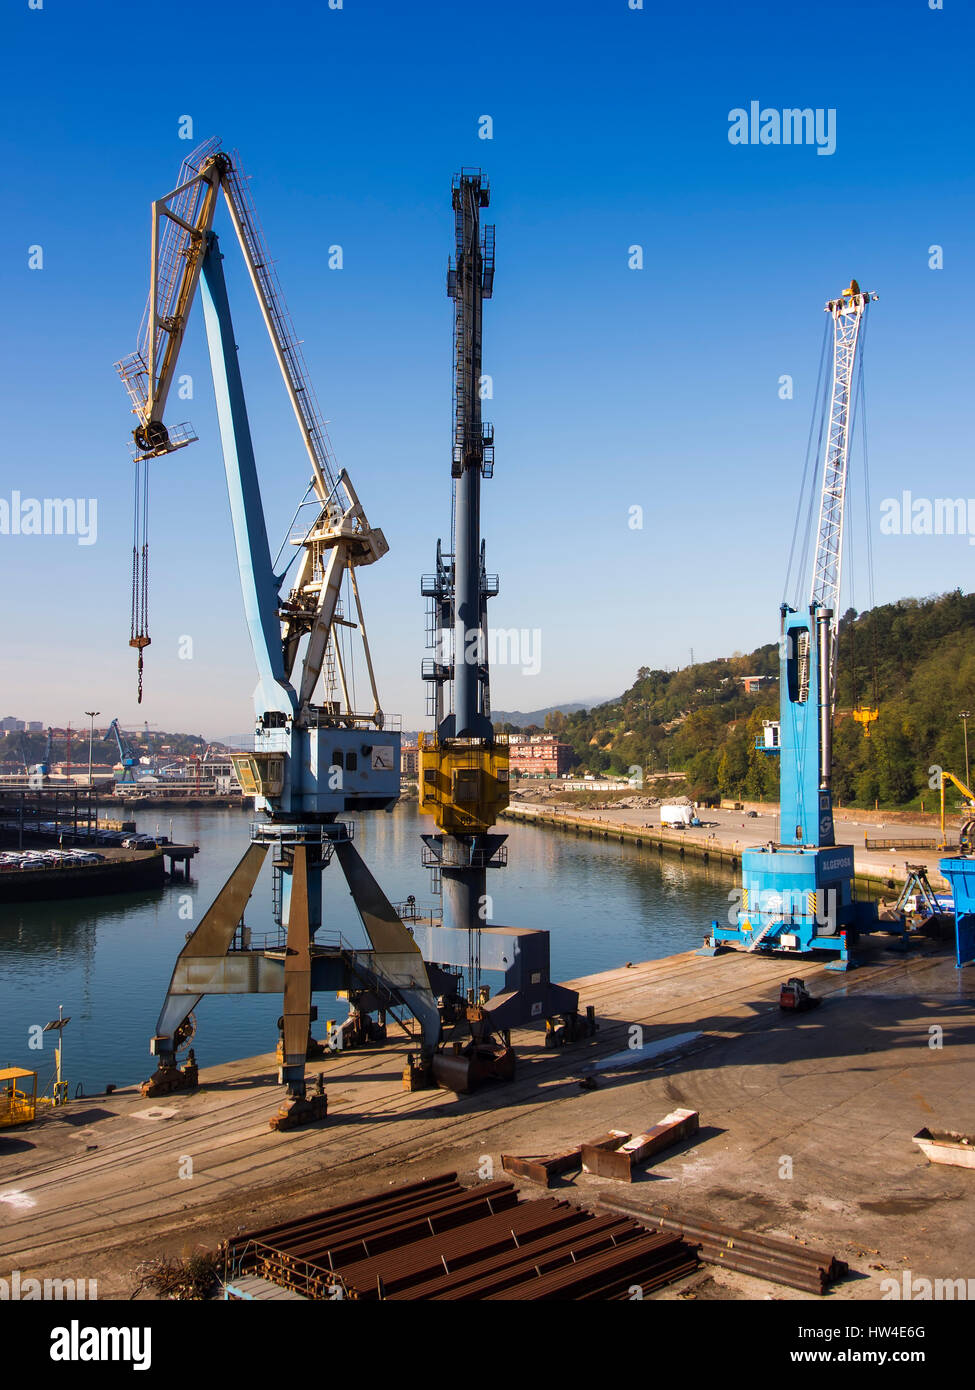 Loading crane, port of Pasajes Gipuzkoa, Basque Country, Spain. Europe - Stock Image